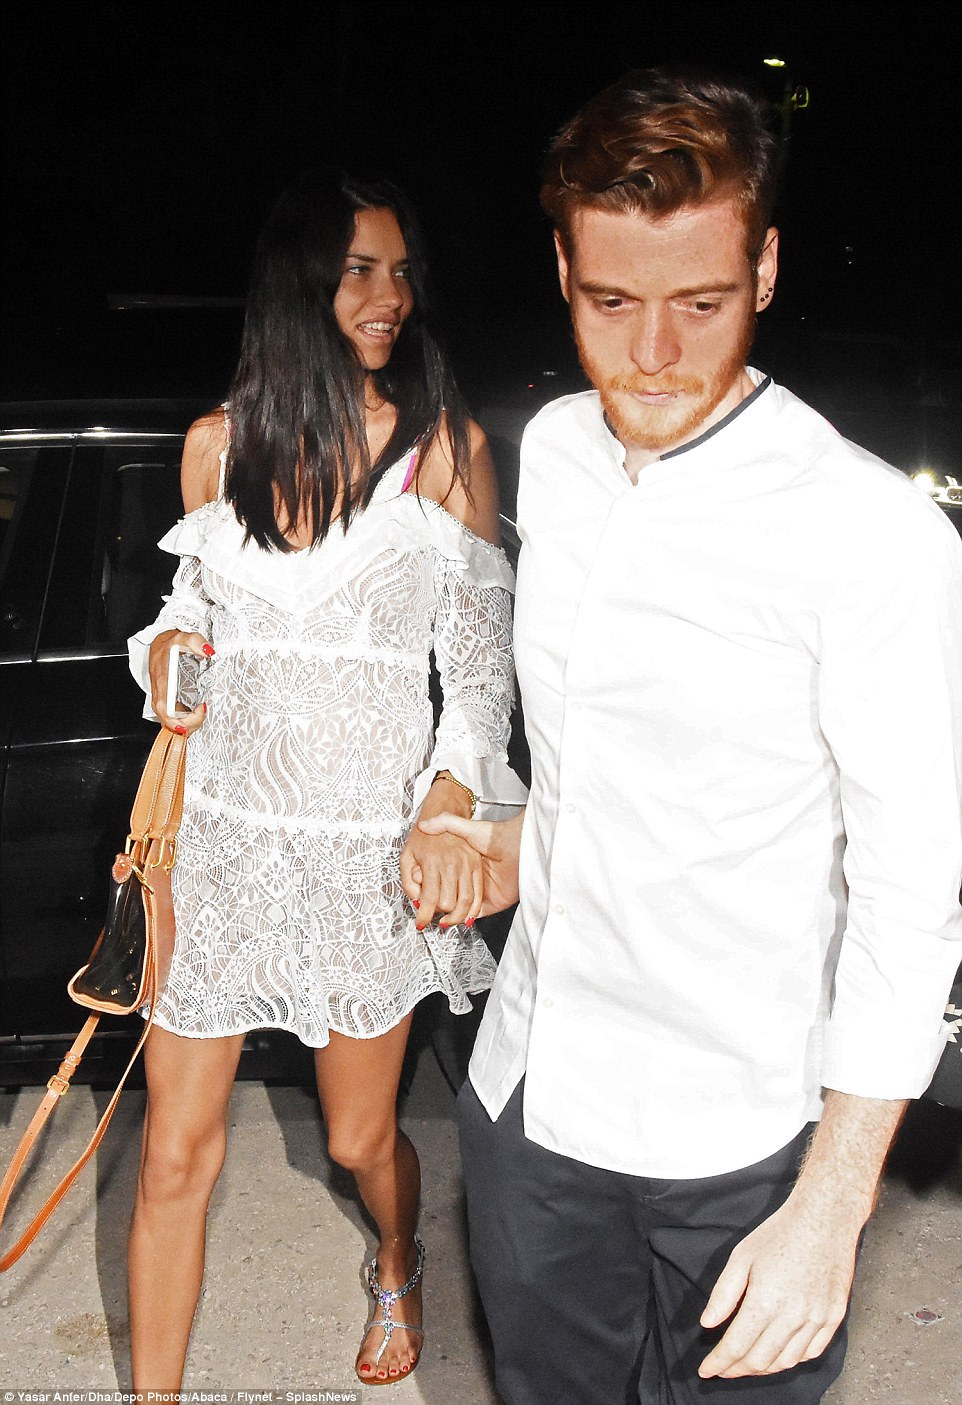 Chic: She slipped into a semi-sheer lacy white dress for their dinner date that teased a look at her slender frame underneath and made for a leggy display